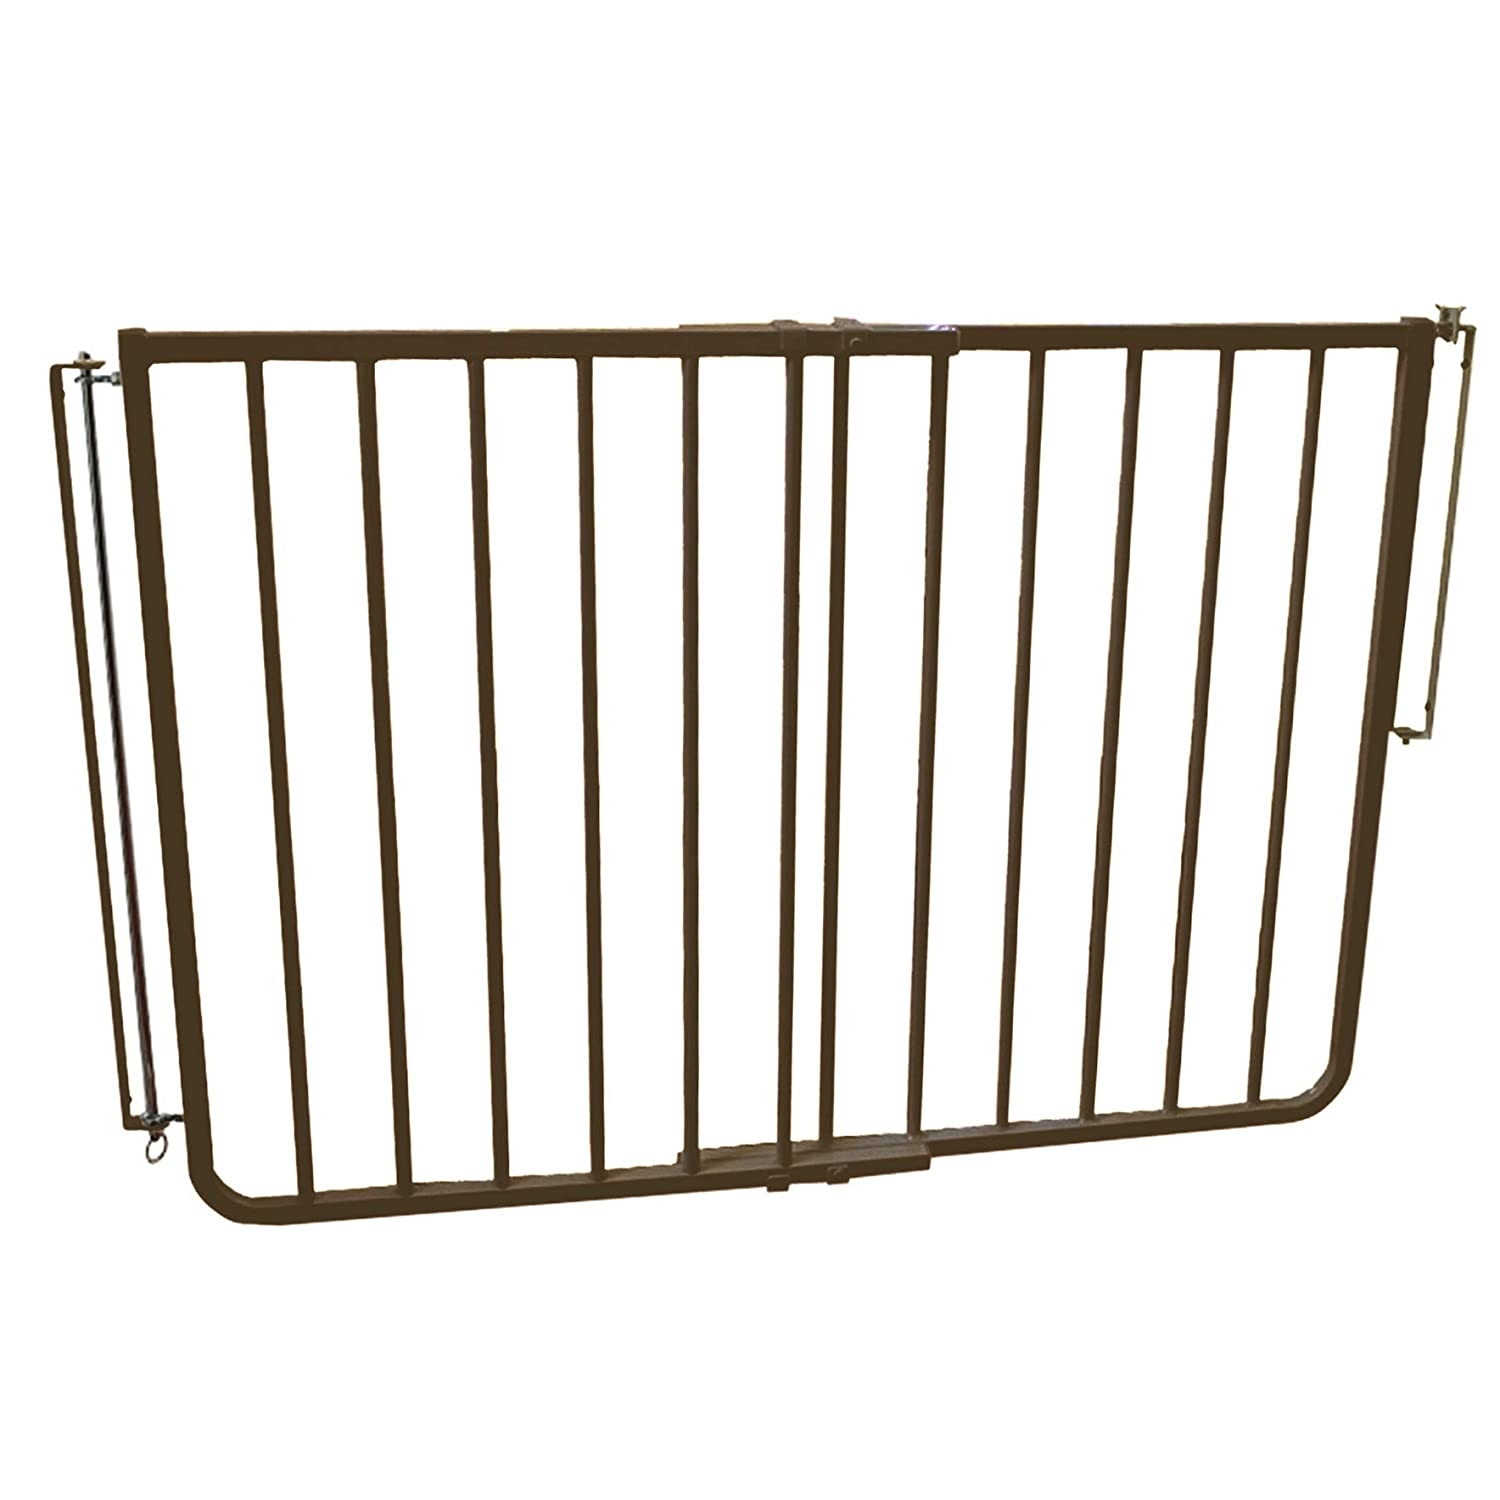 Stairway Special Baby Pet Gate for Outdoors Colors Brown